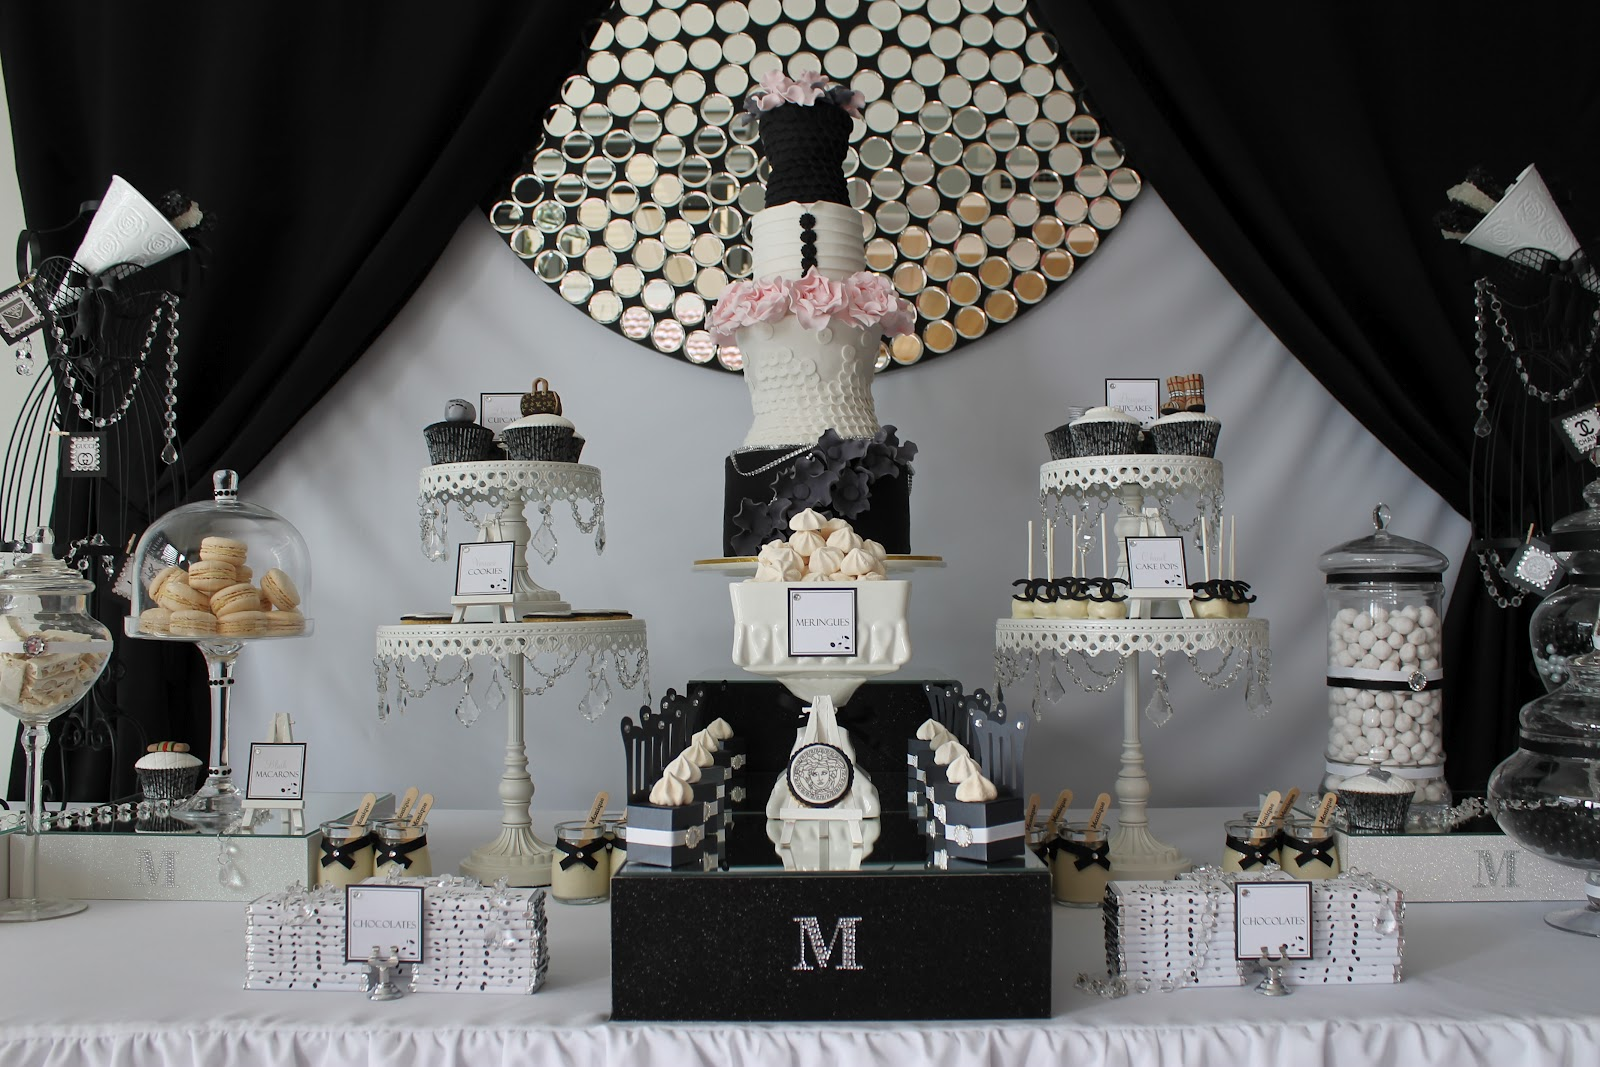 Birthday party theme black and white image inspiration for All white party decoration ideas